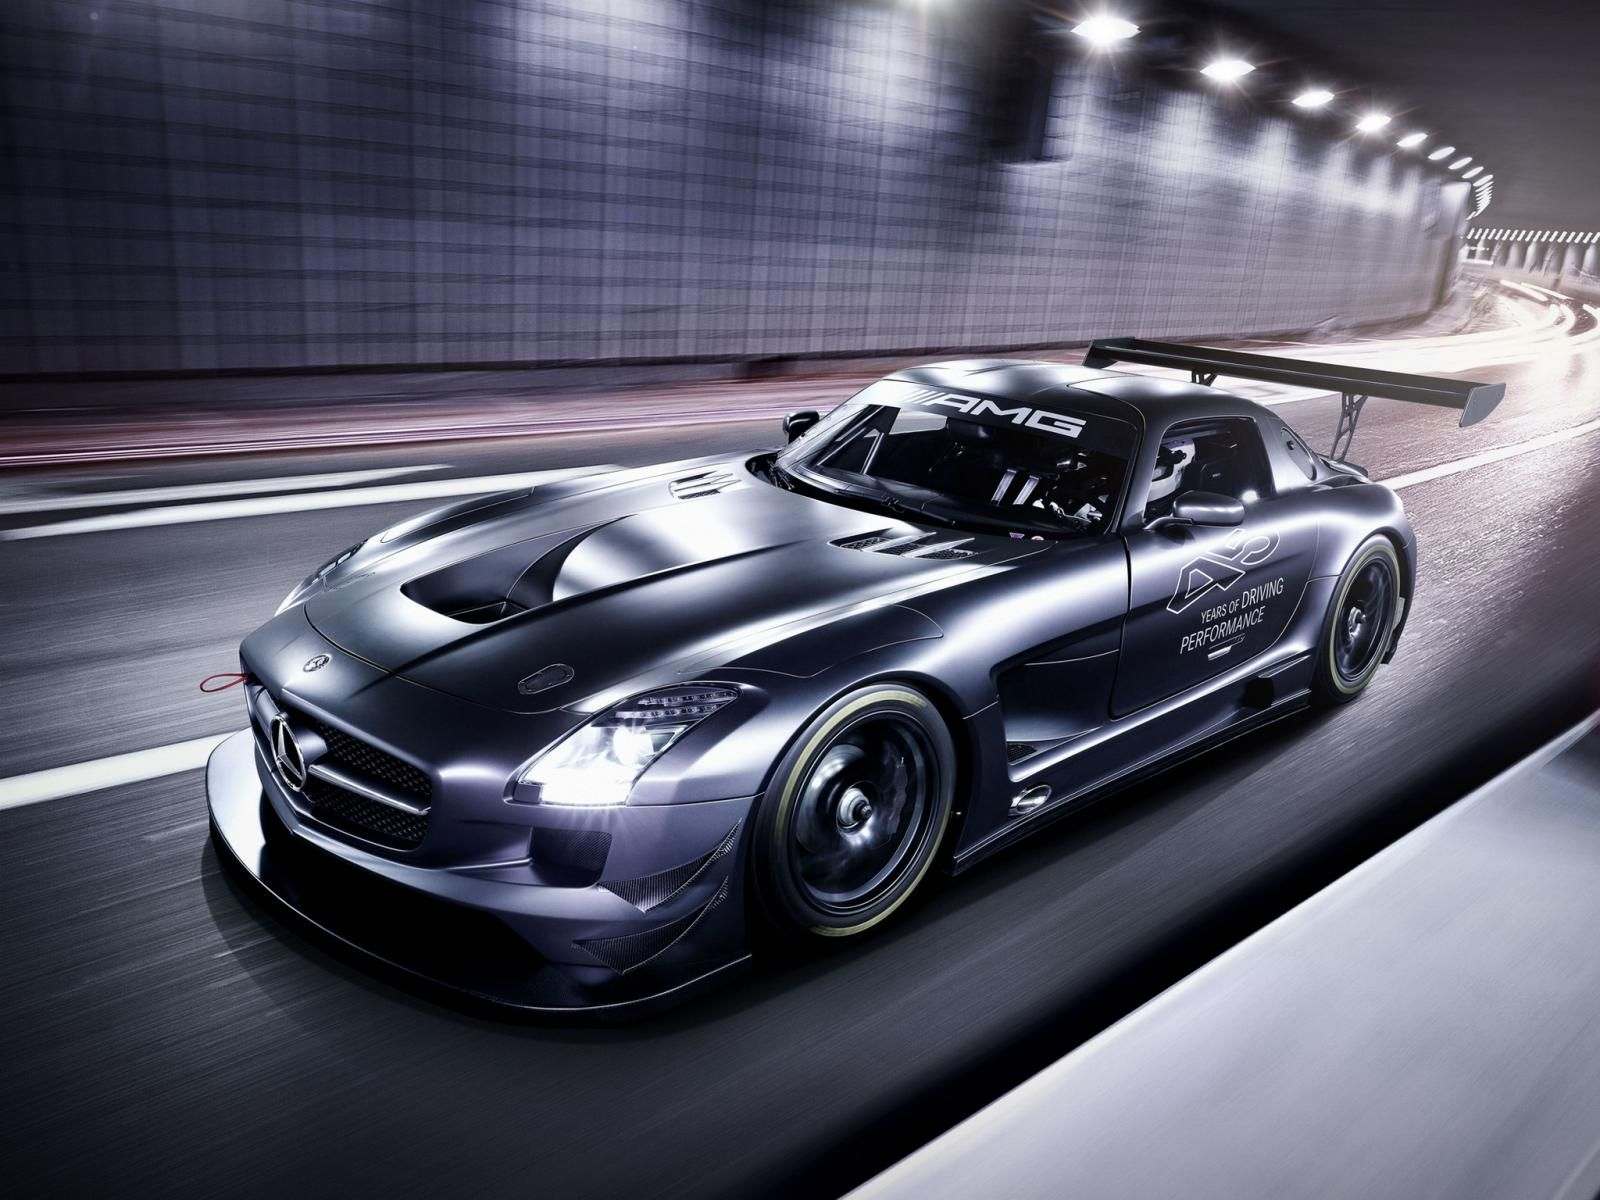 Mercedes Benz Sls Amg Gt3 45th Anniversary With Images